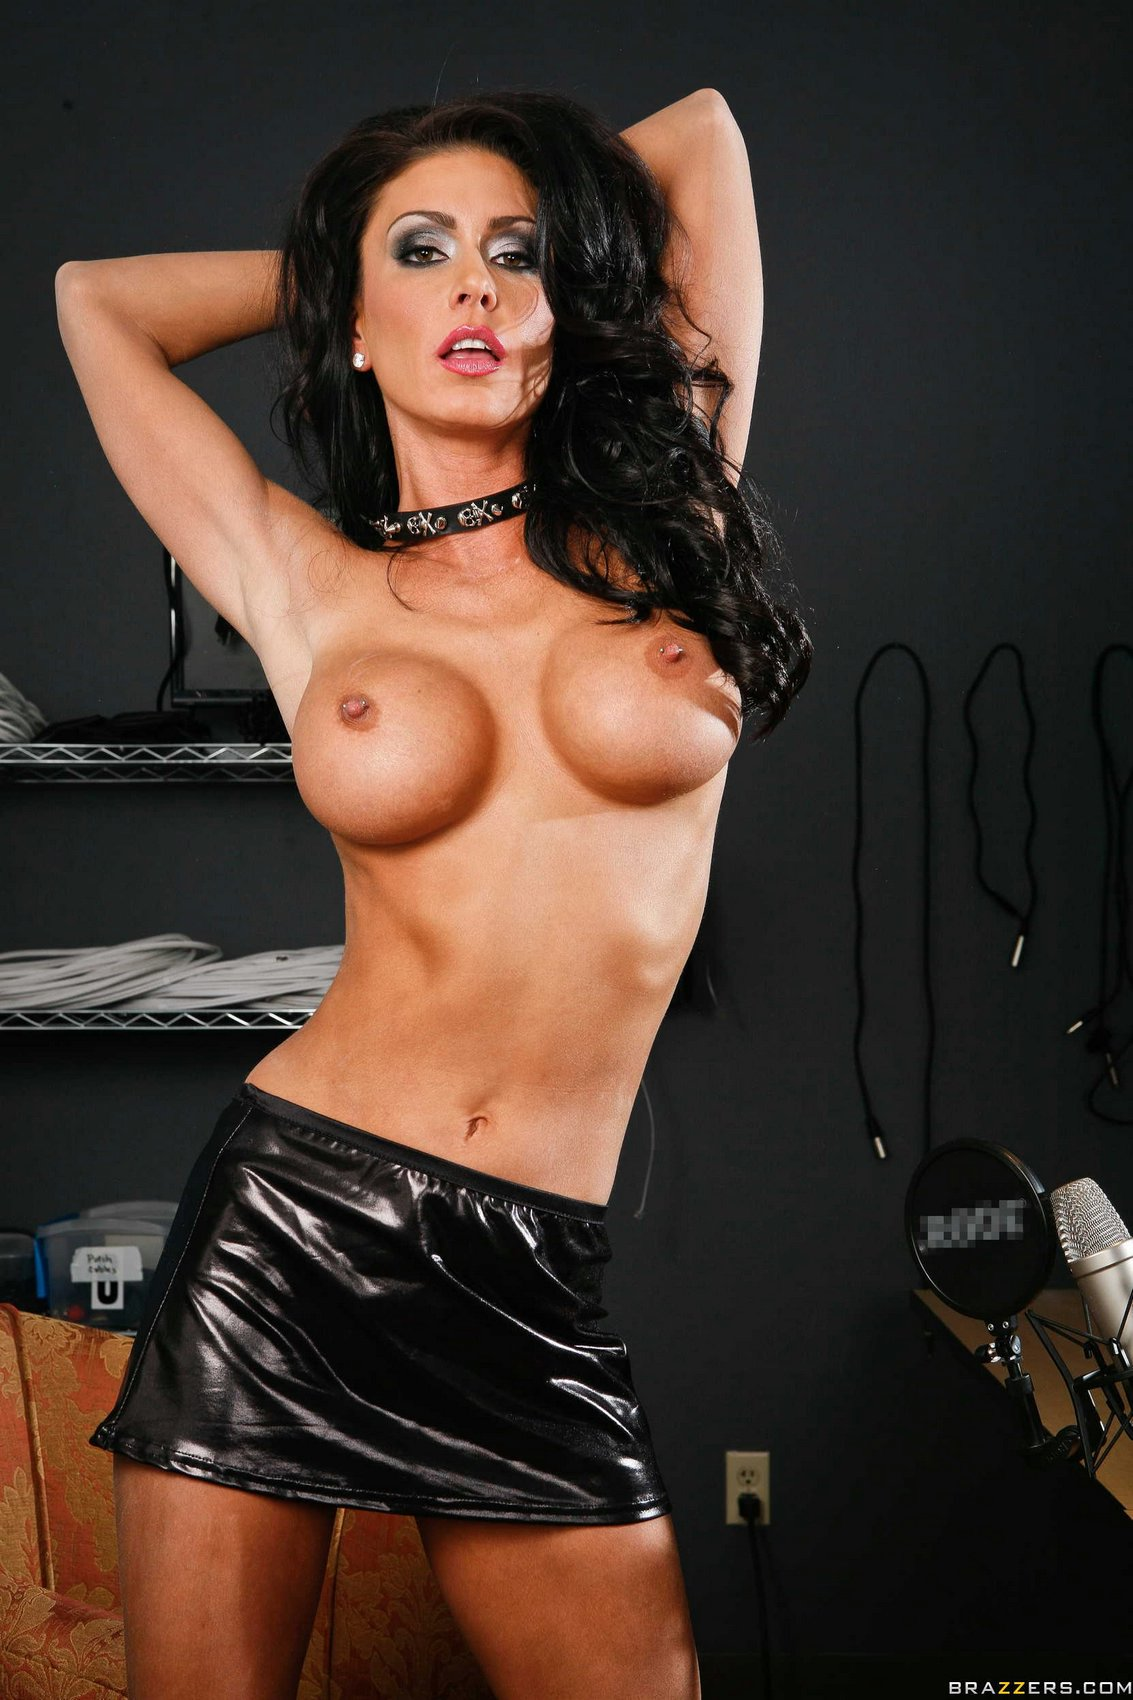 Porn icon jessica jaymes drips her pussy wet in anticipation 4